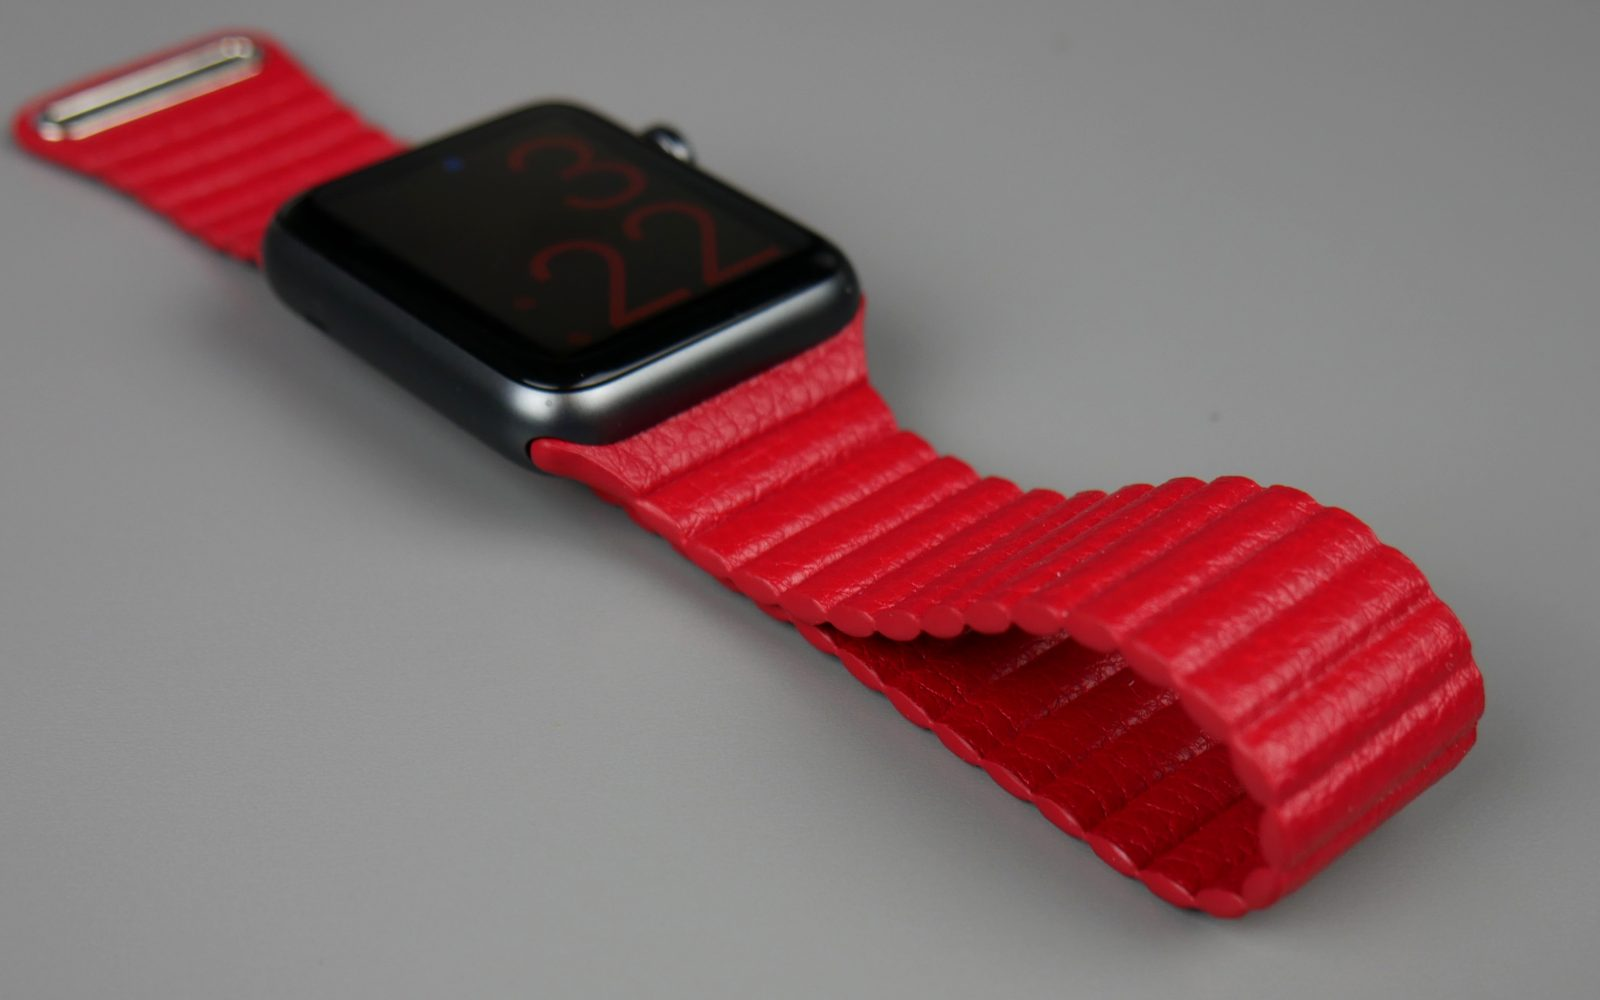 Review: At just $24, this Leather Loop Band for Apple Watch looks